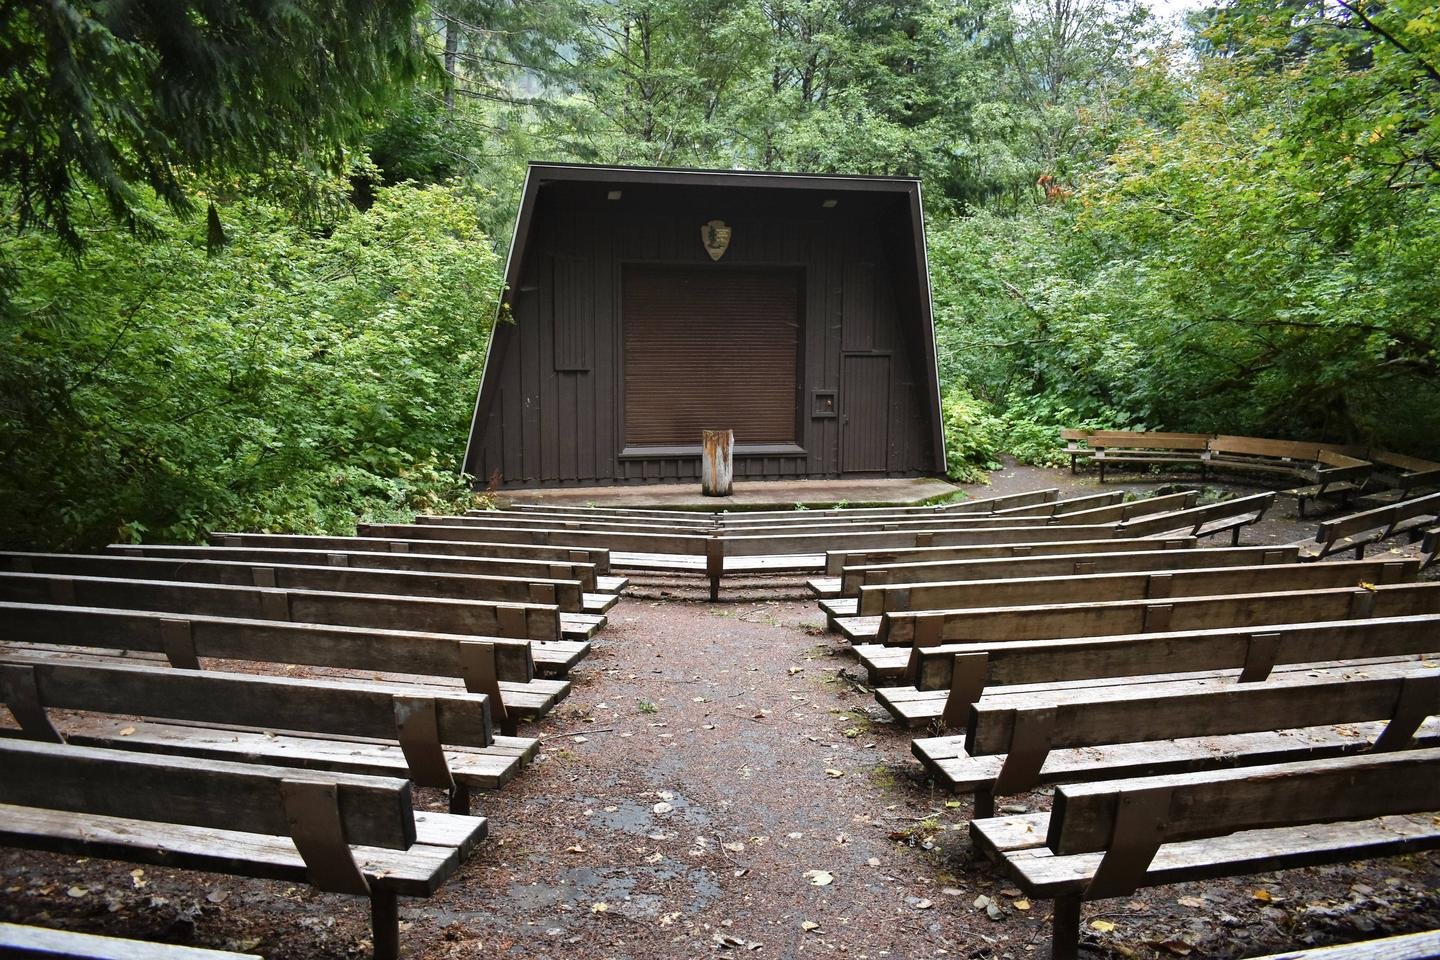 Amphitheater at Colonial Creek CampgroundAmphitheater at Colonial Creek Campground for Ranger Programs